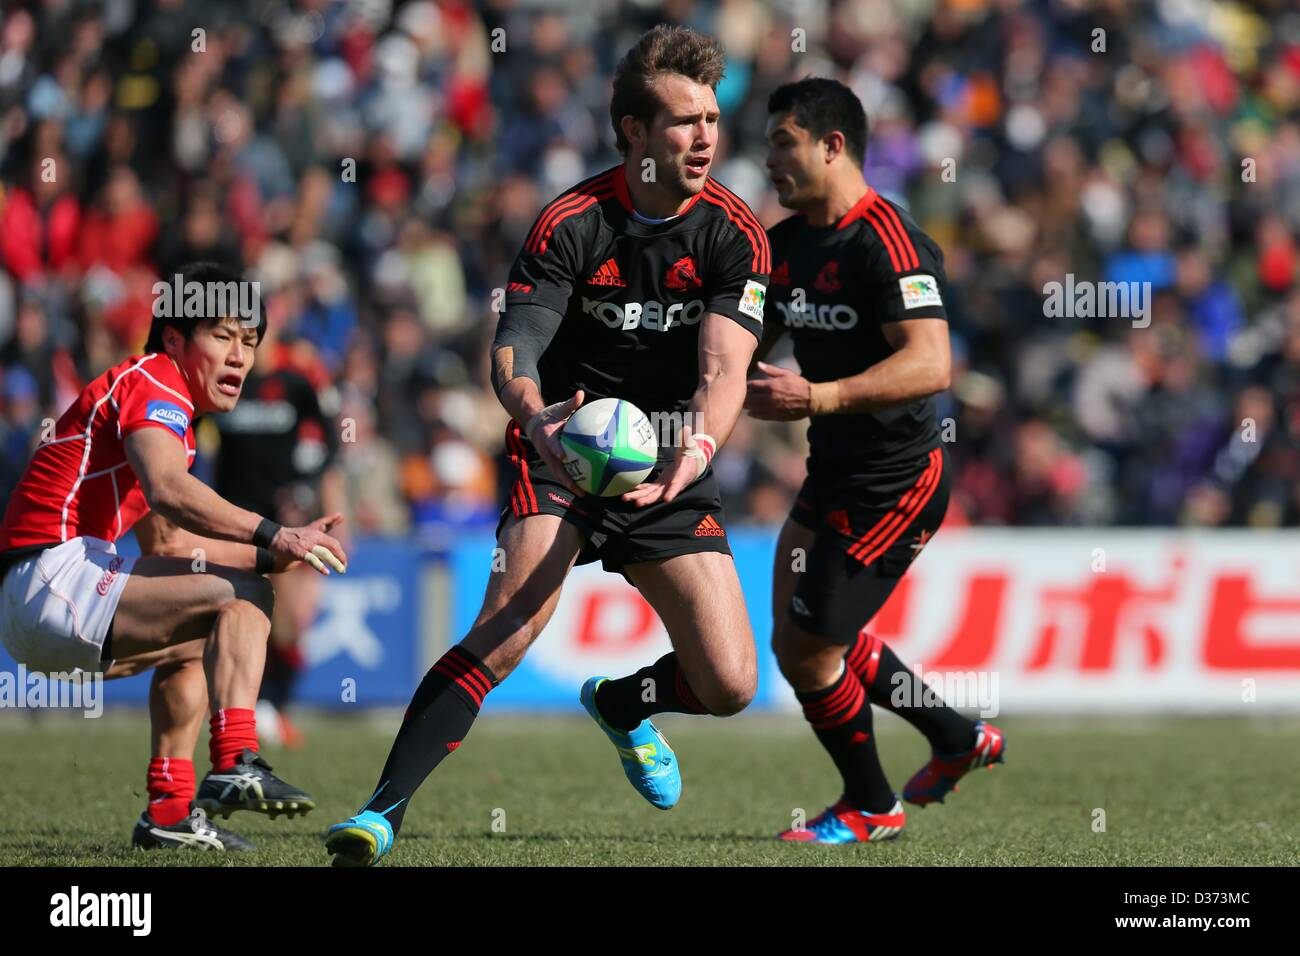 Tokyo, Japan. 10th February 2013. Peter Grant (Kobelco Steelers), The 50th Japan Rugby Football Championship 2nd - Stock Image